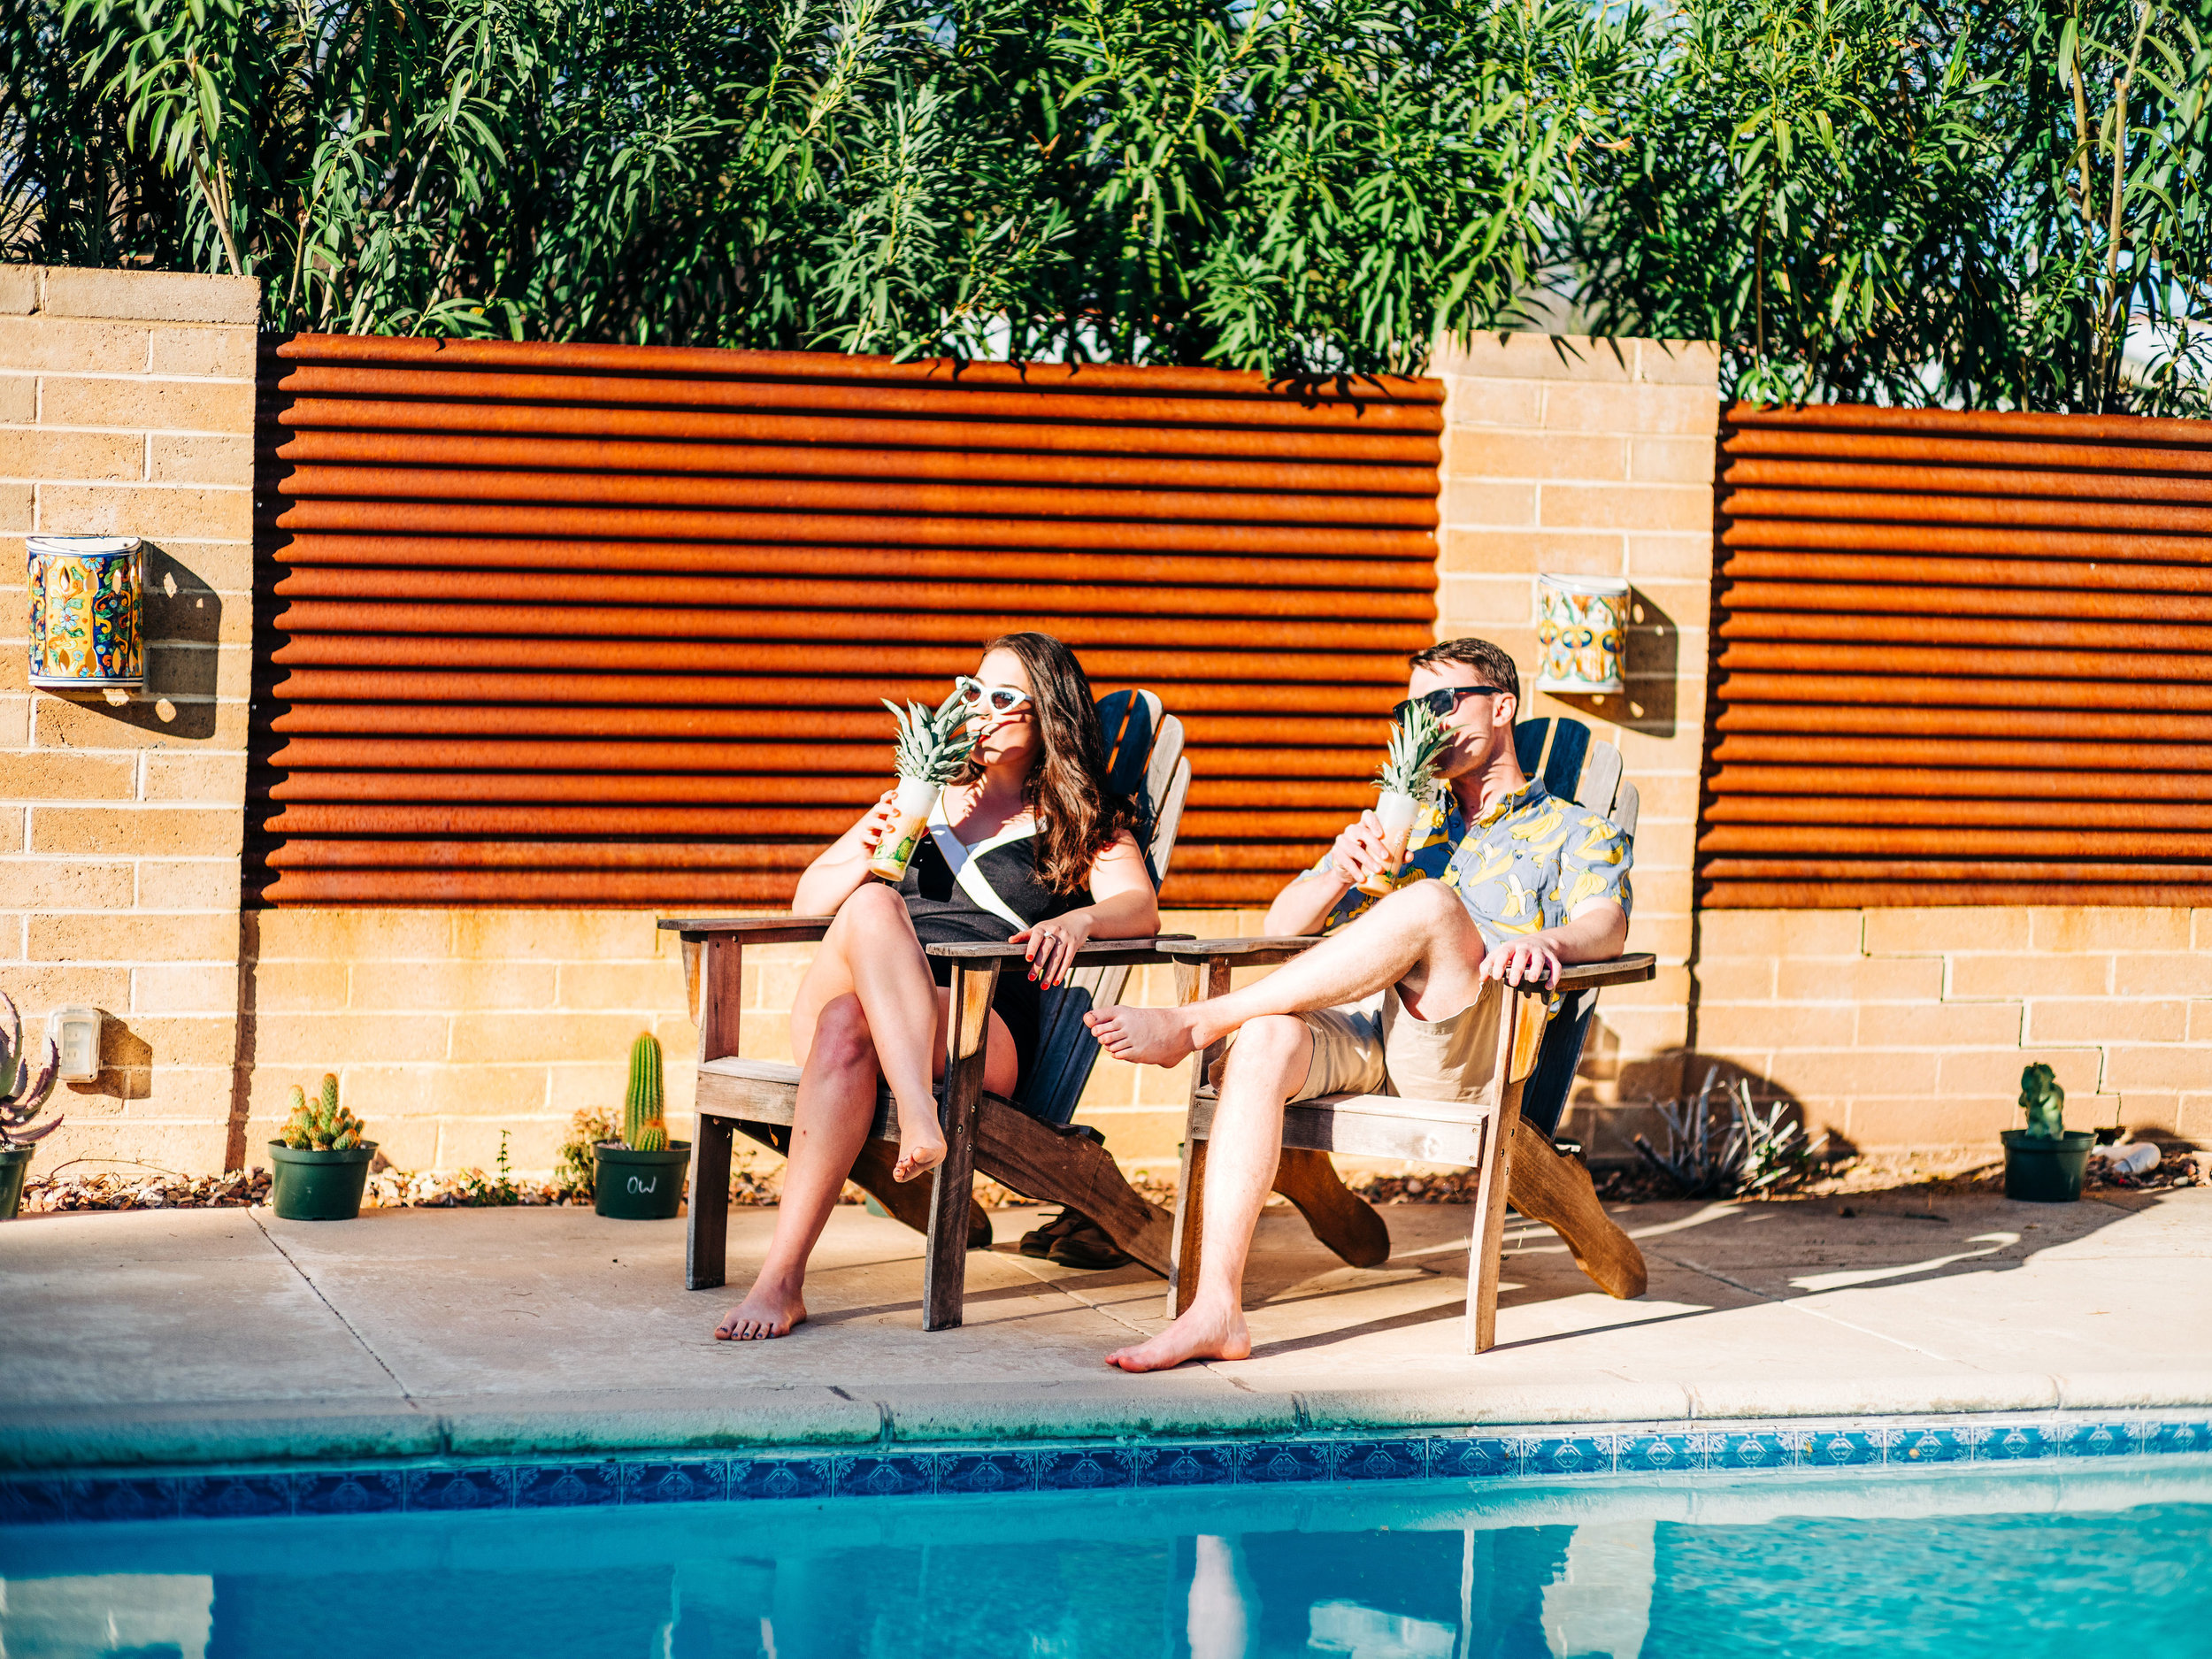 Andy-Shepard-Photography-Tucson-Pool-Party-55.jpg